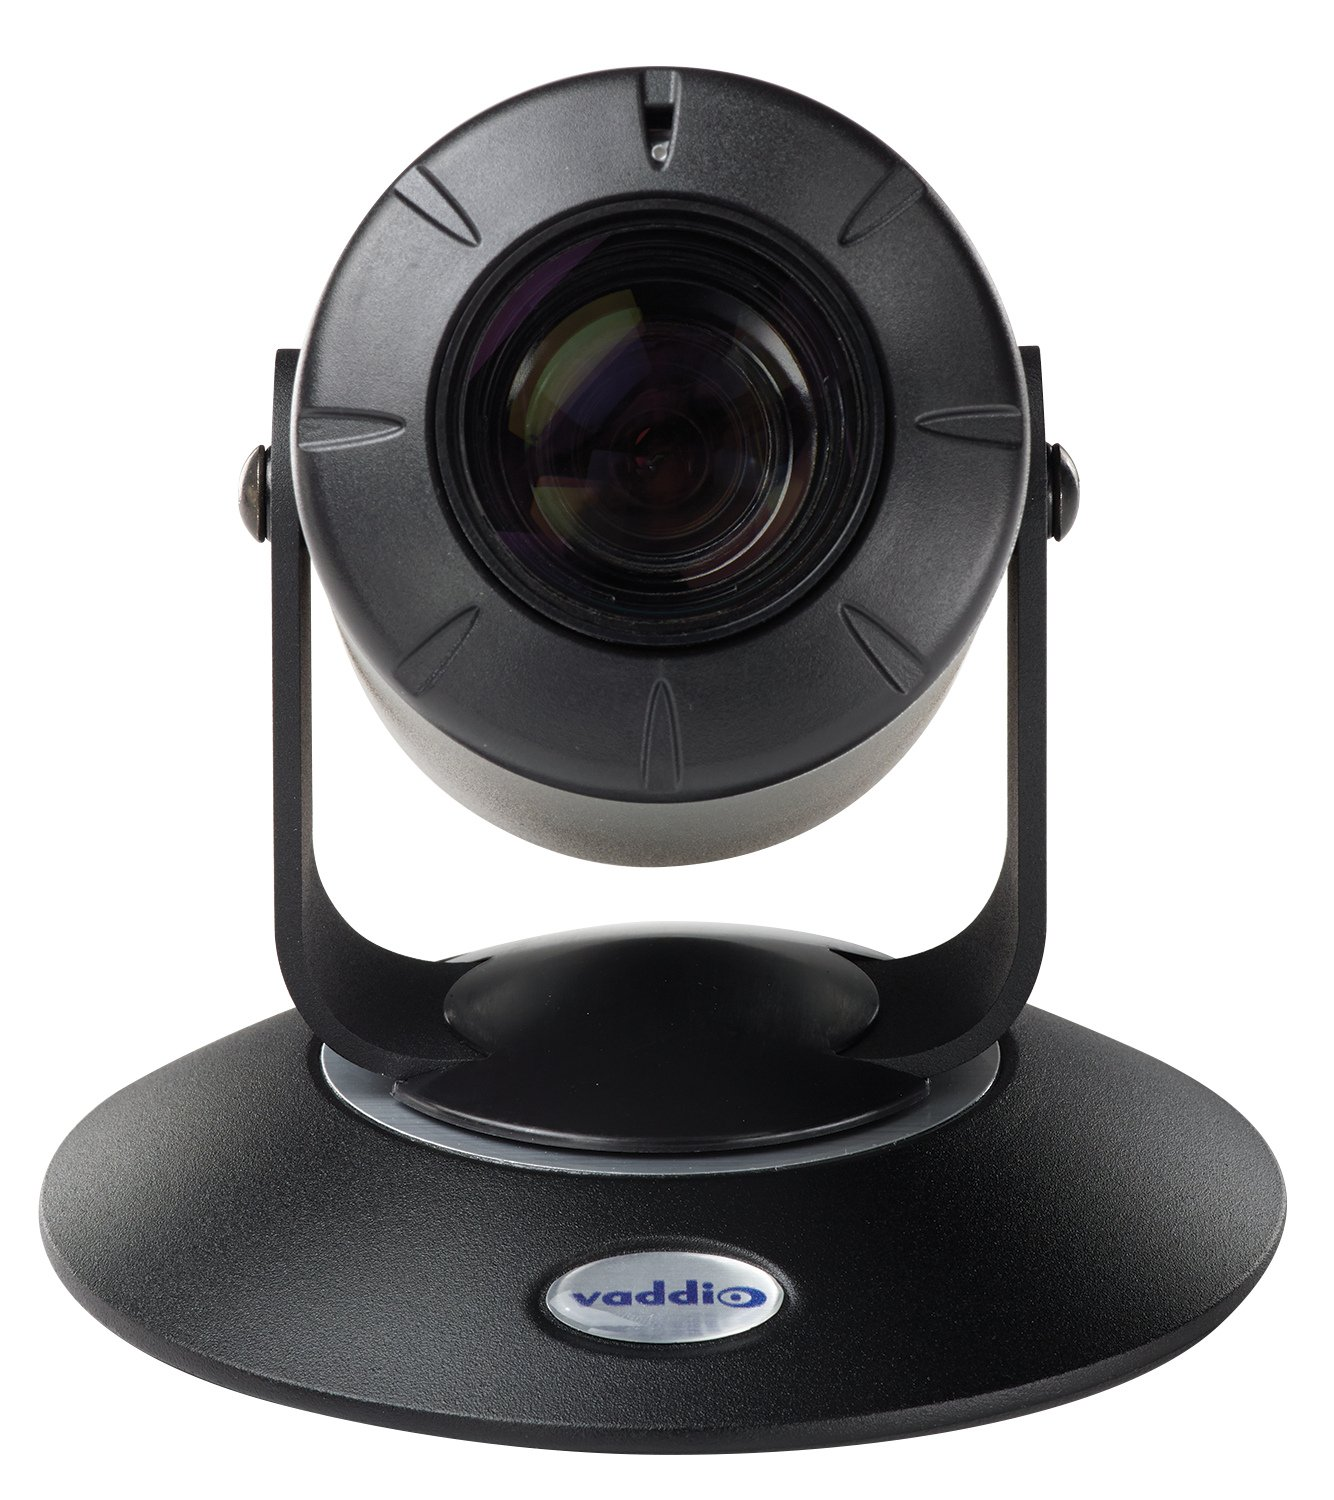 HD POV Camera System with Quick-Connect SR Interface